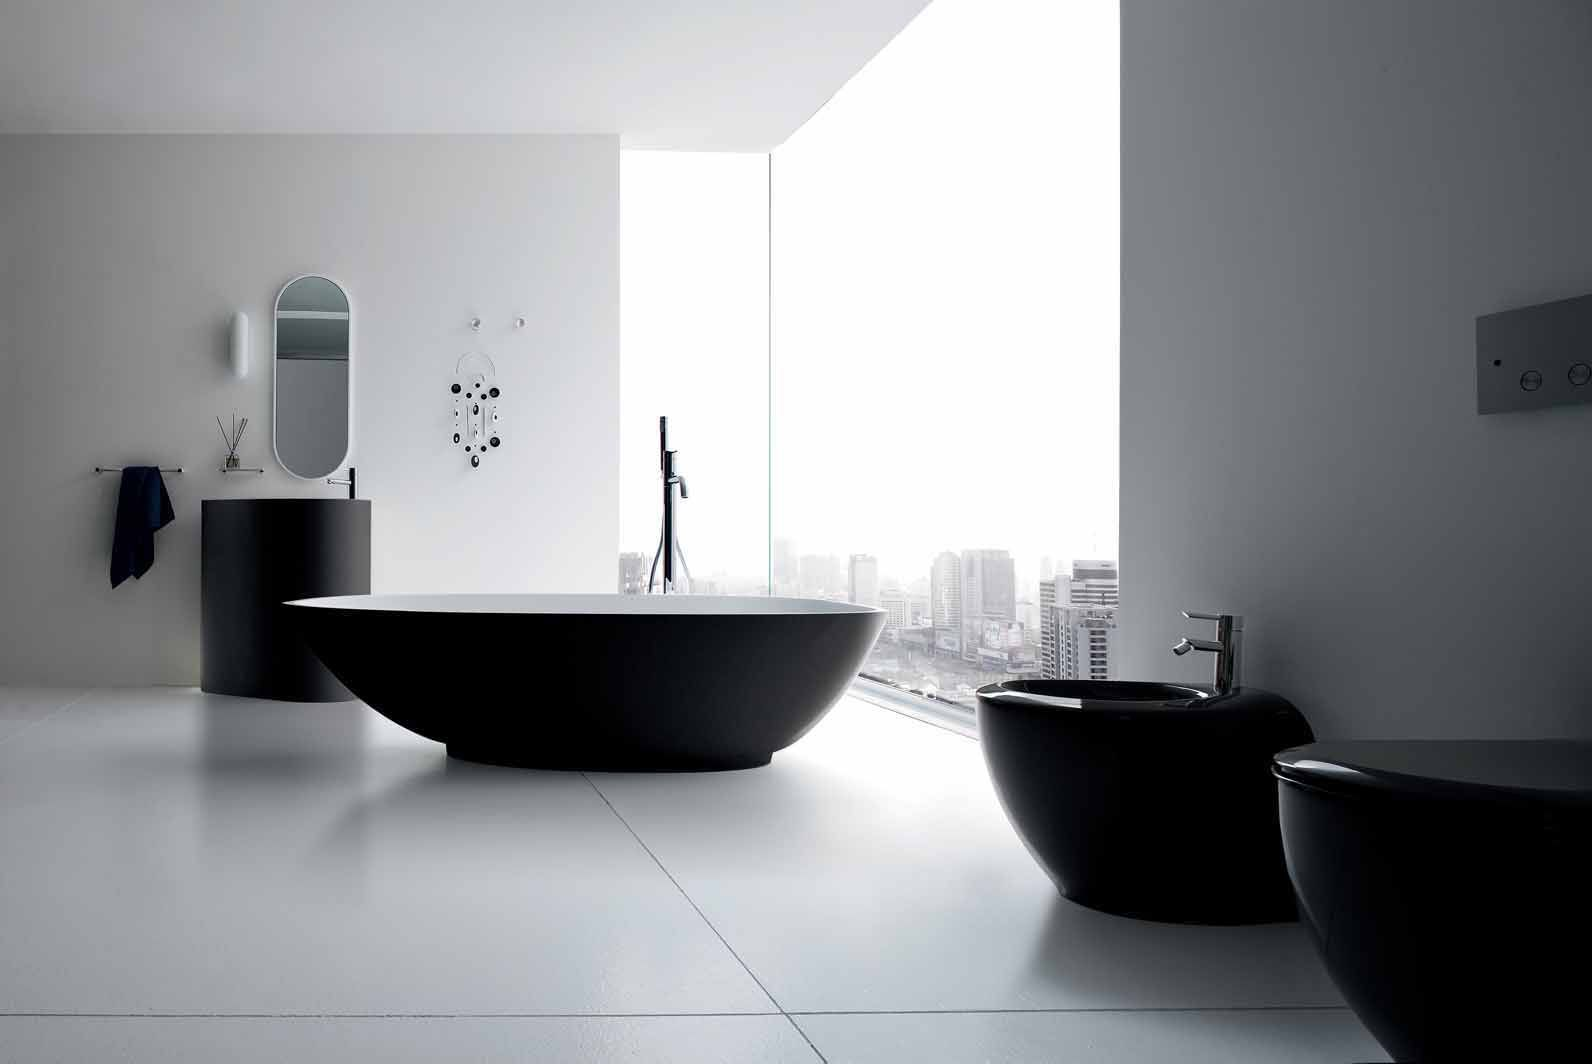 Black and white bathroom ideas pinterest - Black White